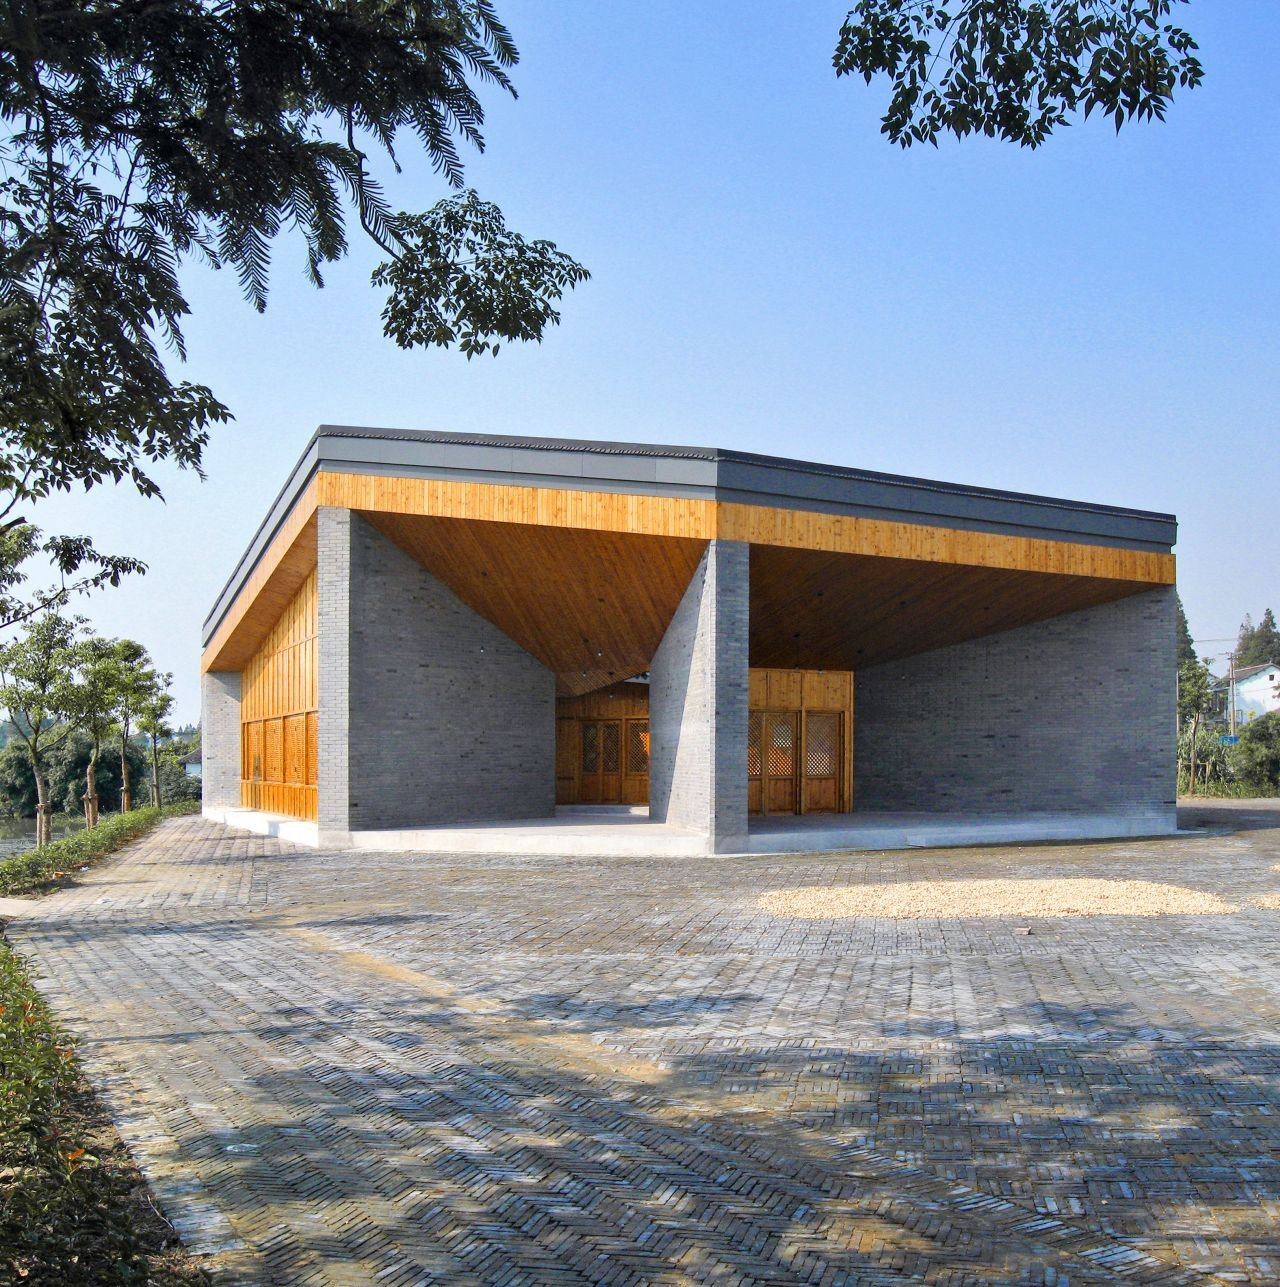 Community Pavilion at Jintao Village / Scenic Architecture, Courtesy of Scenic Architecture